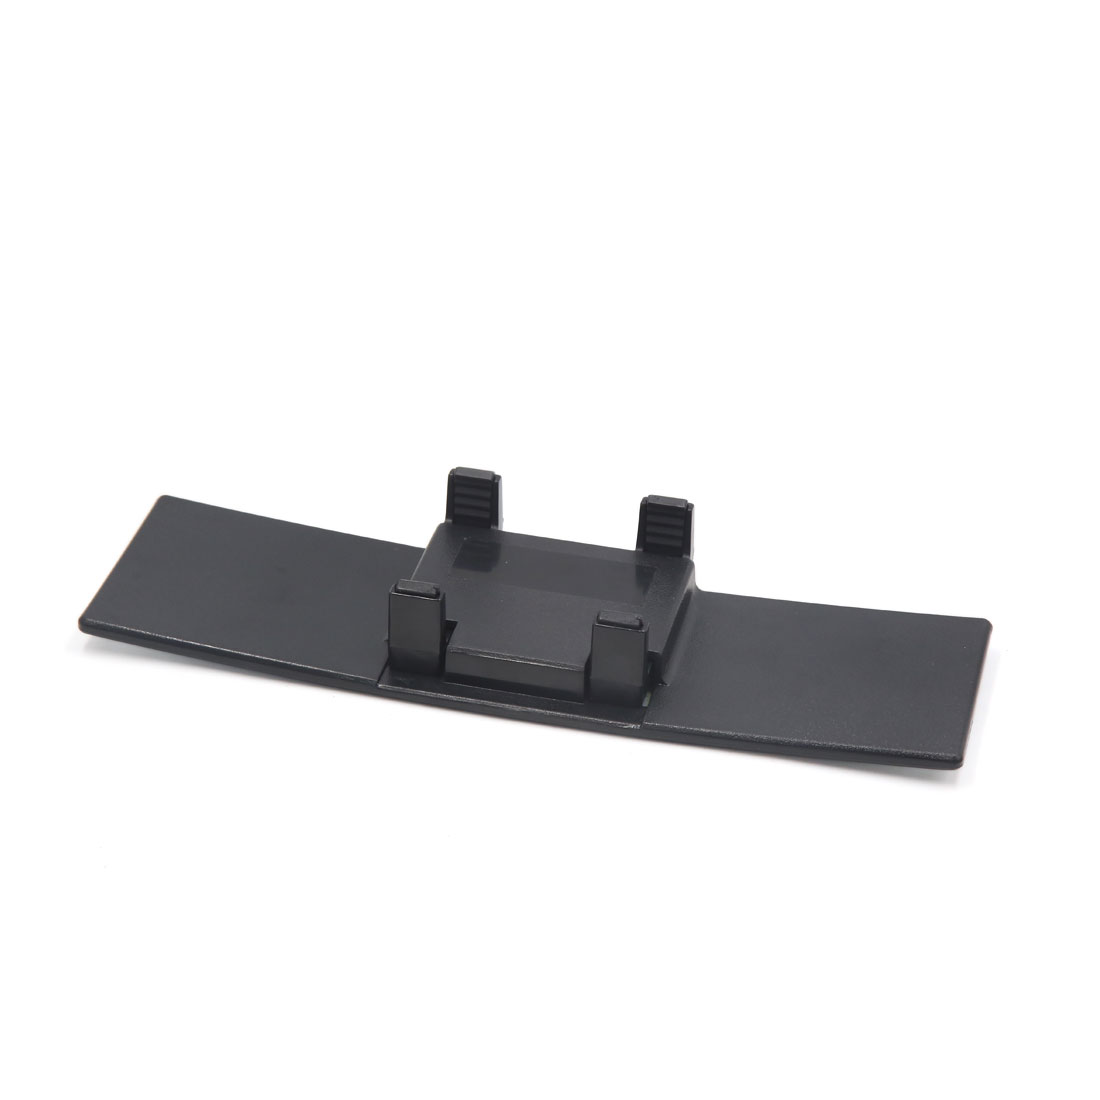 240mm Length Black Plastic Frame Curved Panoramic Car Interior Rearview Mirror - image 1 of 2